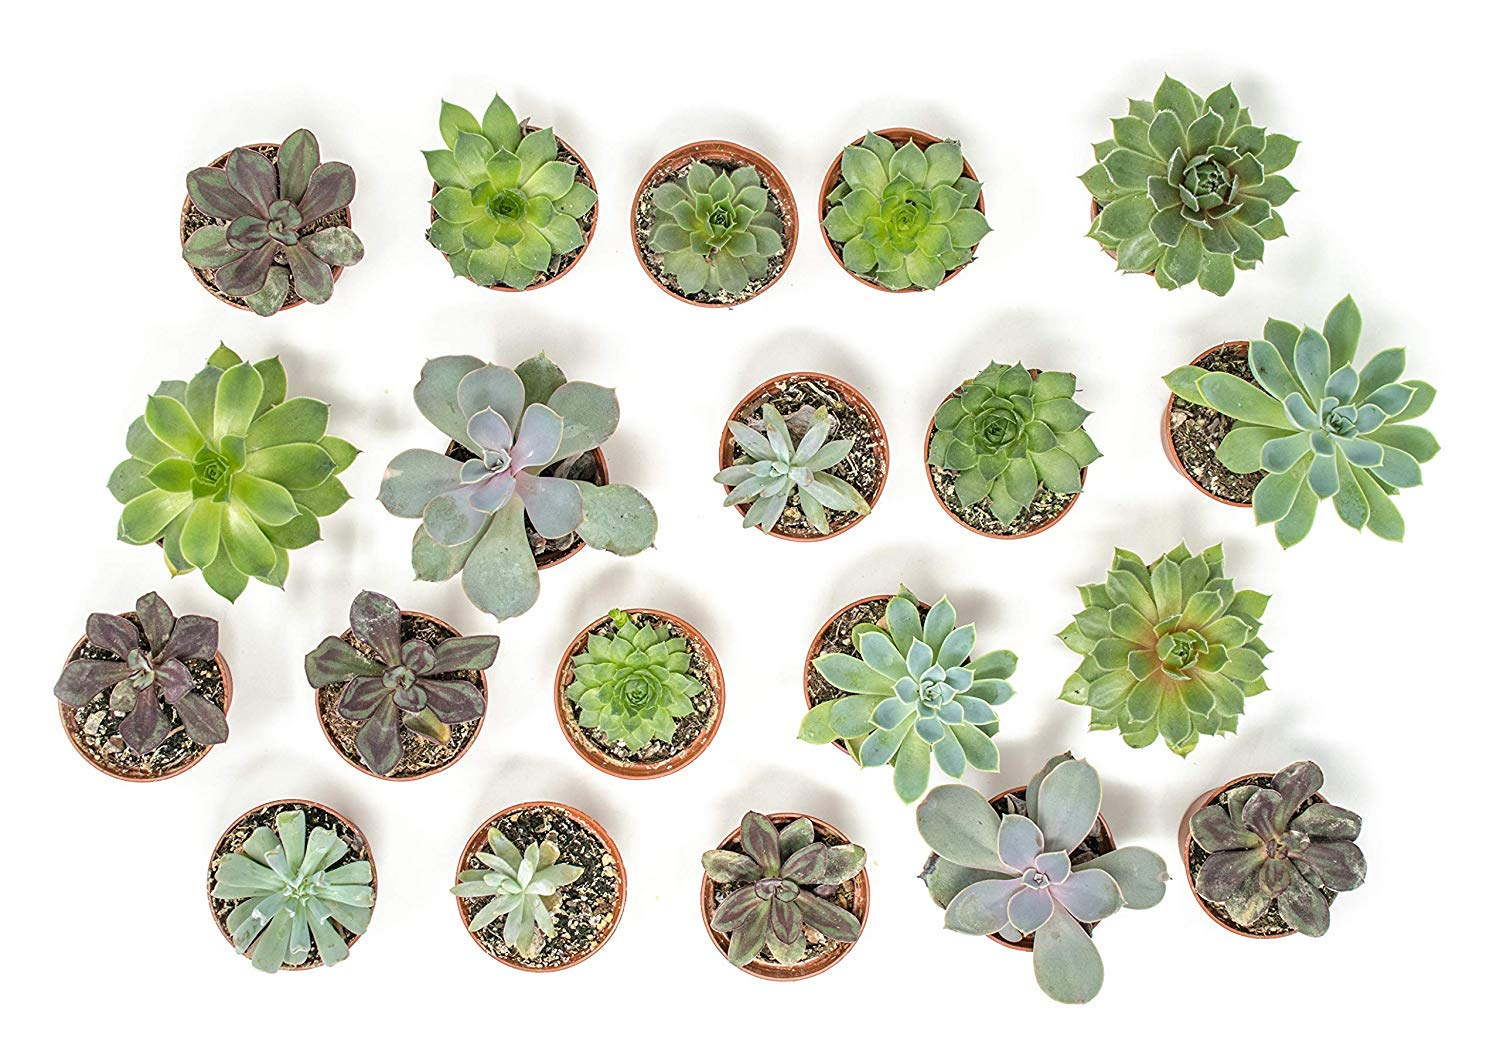 20 Live ''B-Grade'' Succulents | House Plants with Minor Flaws | Healthy Discounted Cheap Succulent Plants in Planter Pots with Soil by Plants for Pets by Plants for Pets (Image #9)